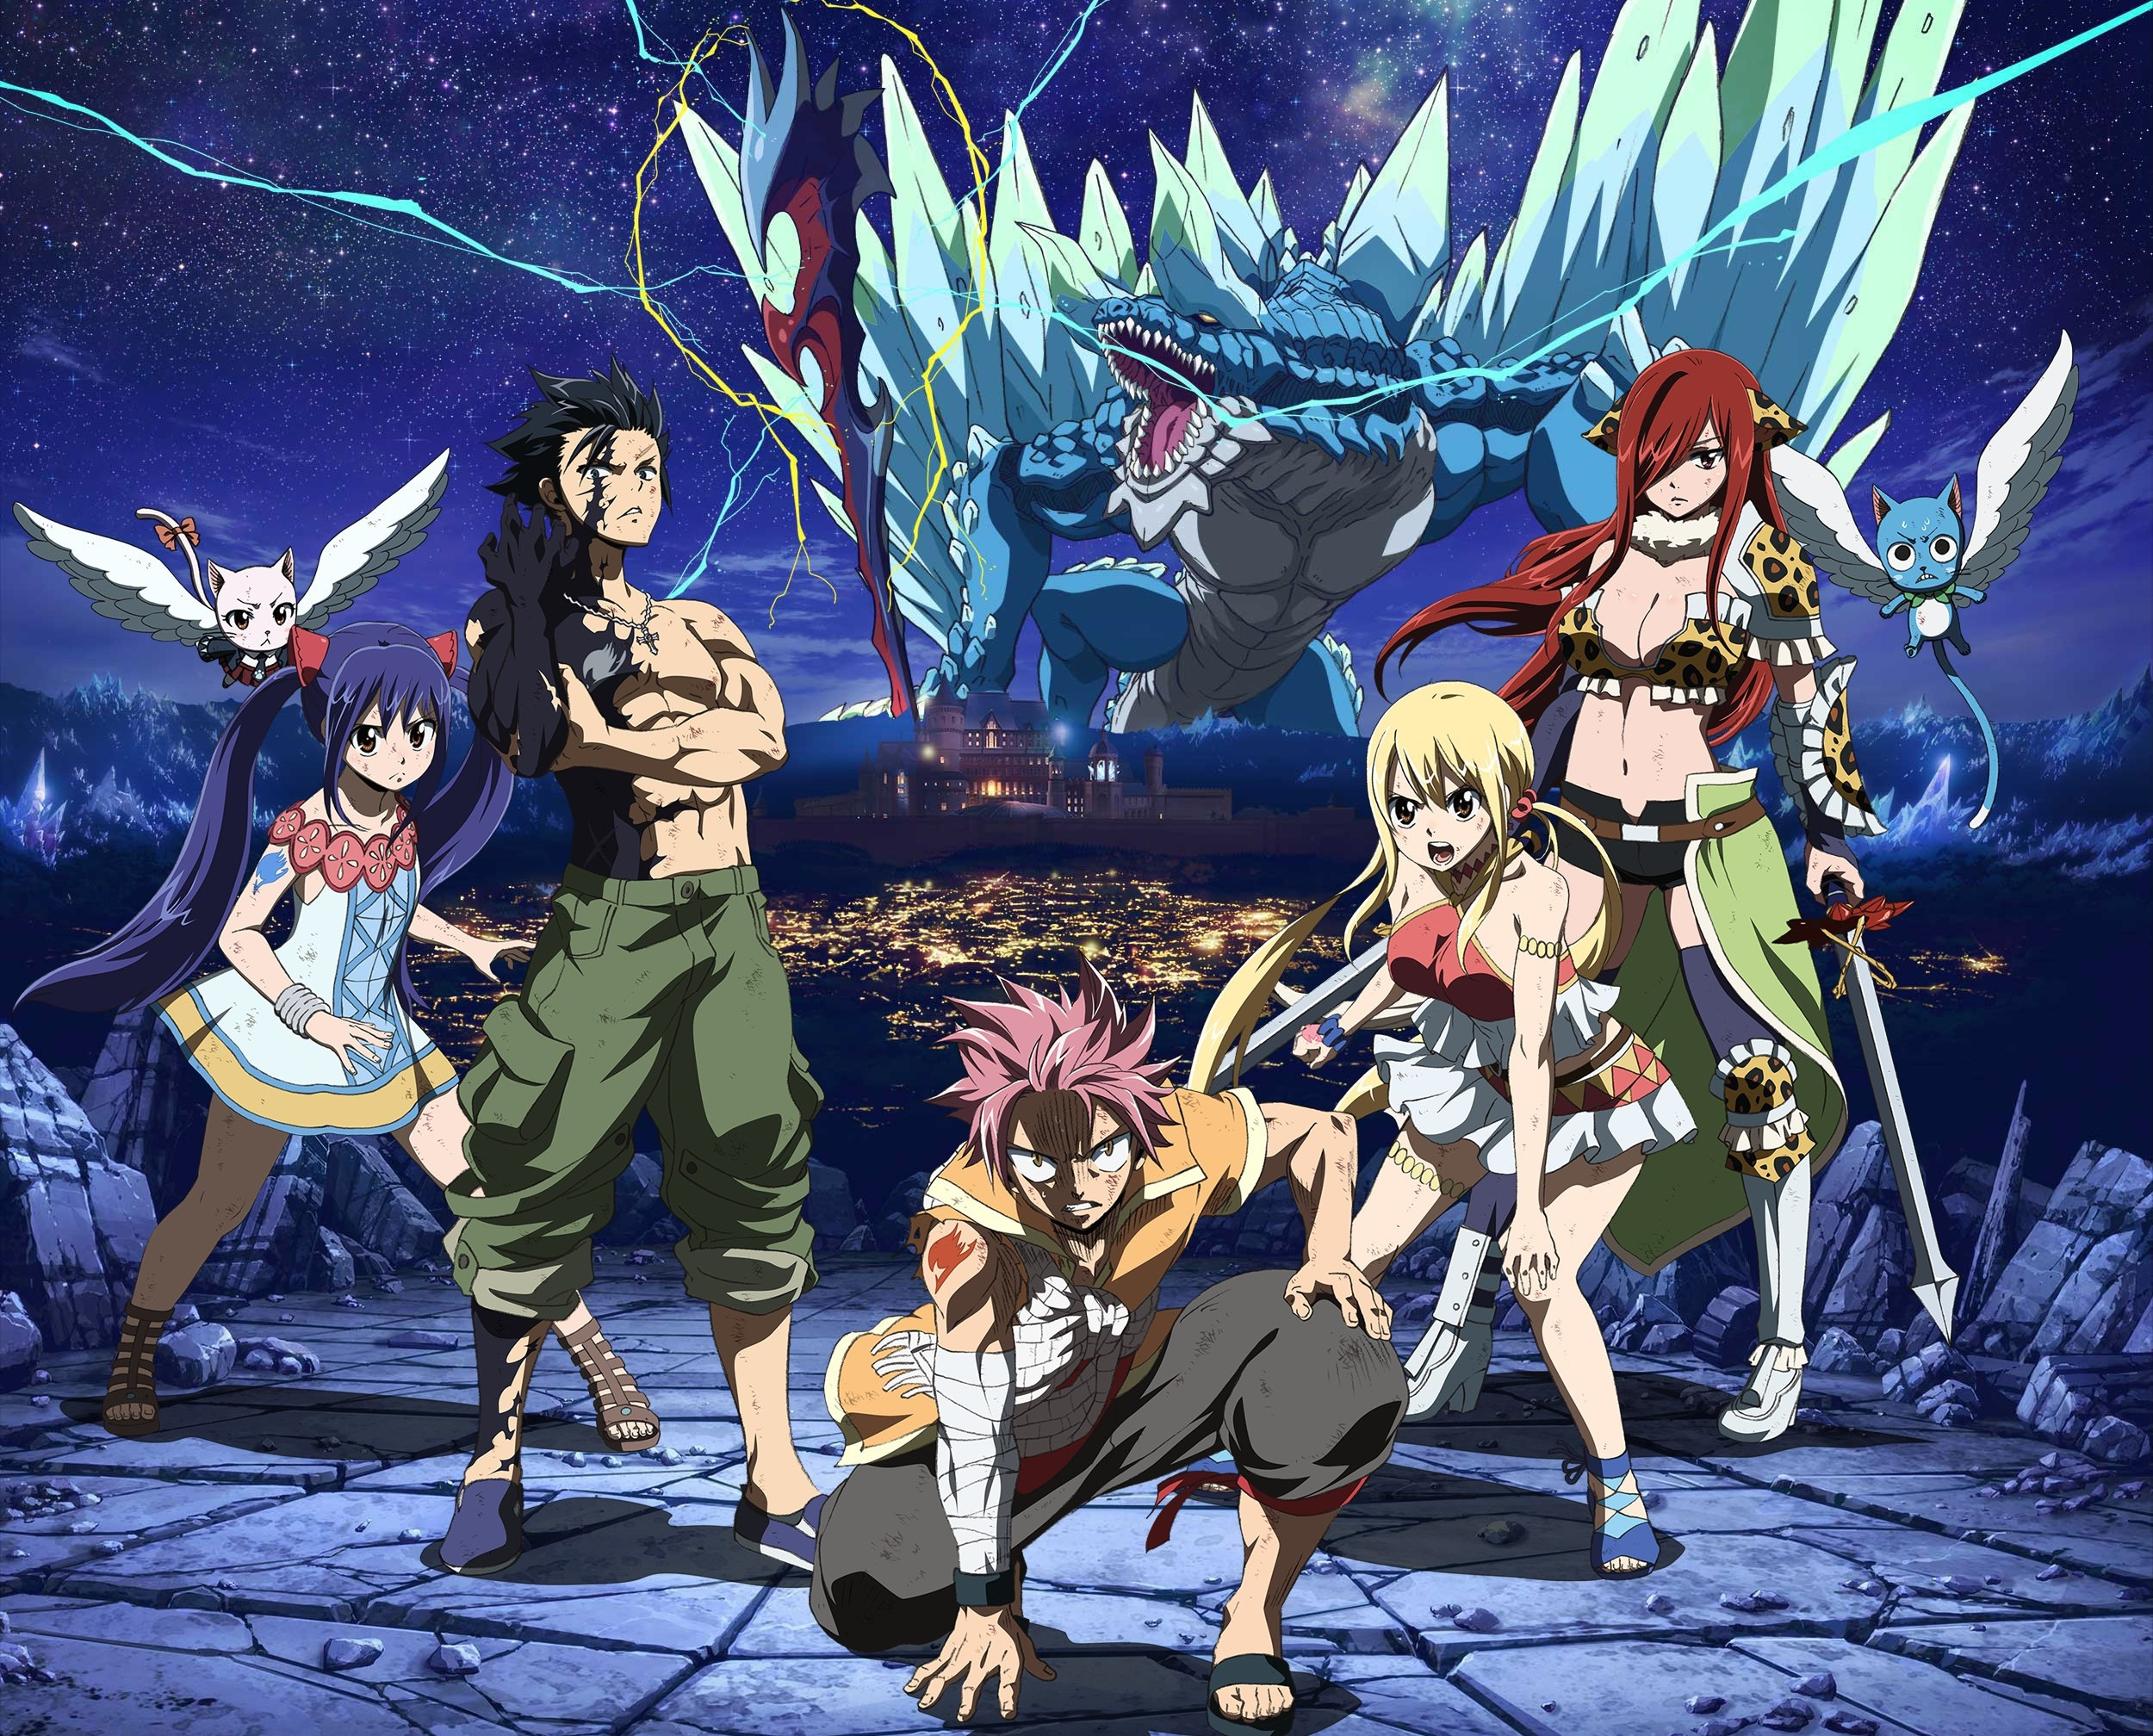 Fairy Tail Hd Wallpaper Fairy Tail Dragon Cry 1310762 Hd